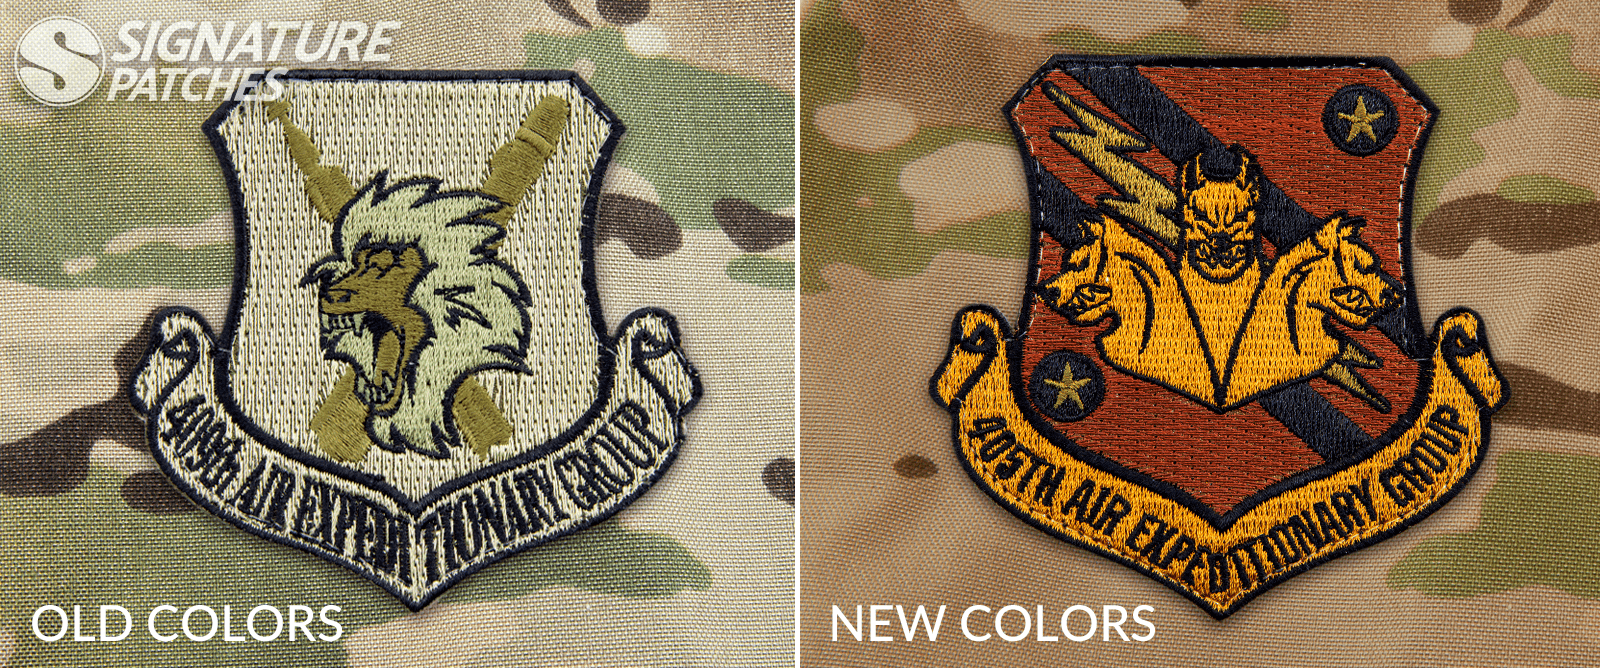 everything you need to know about operational camouflage pattern ocp patches signature patches ocp patches